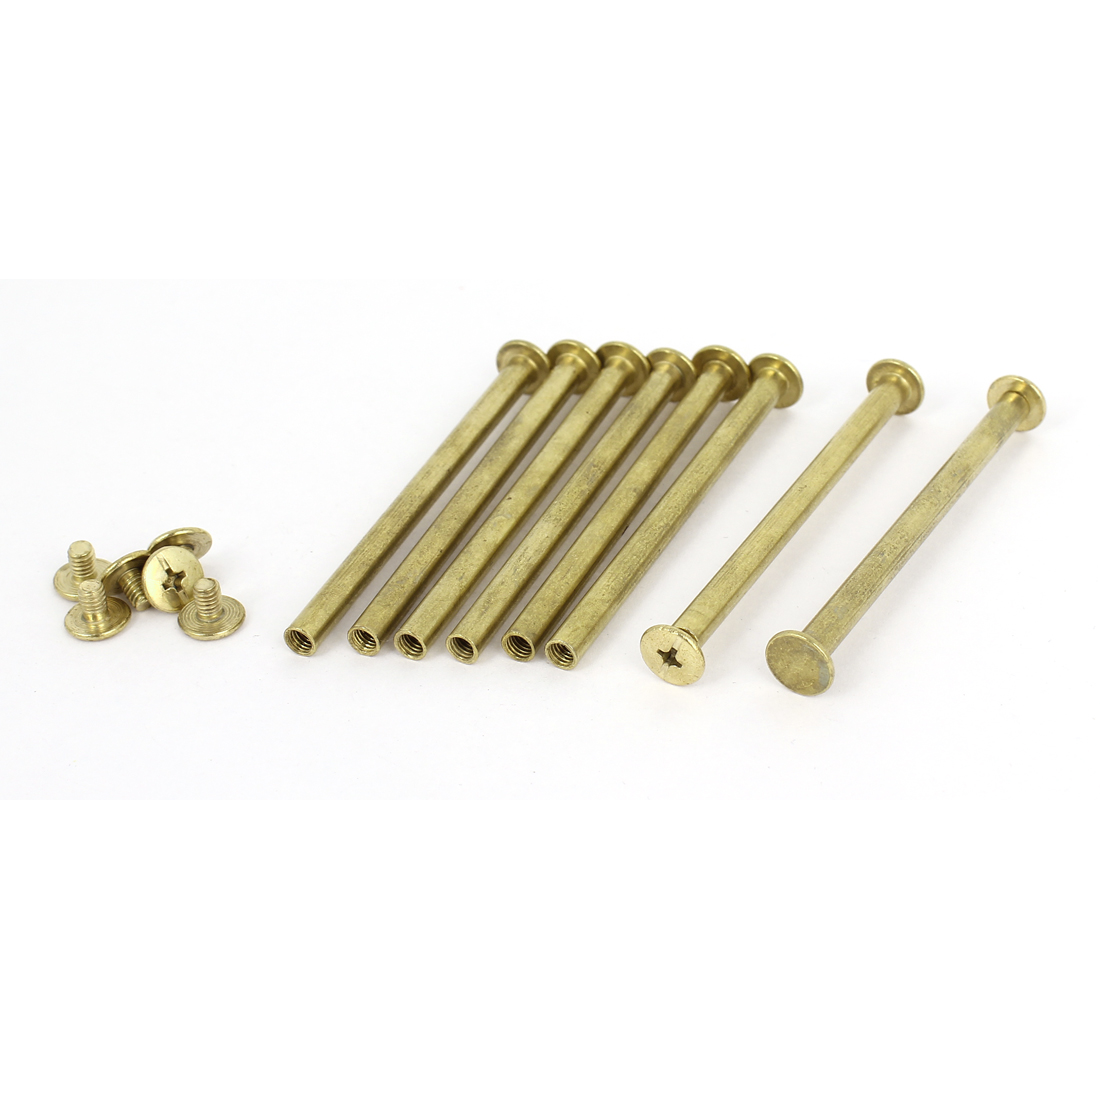 Brass Plated 5x70mm Binding Chicago Screw Post 8pcs for Leather Scrapbook